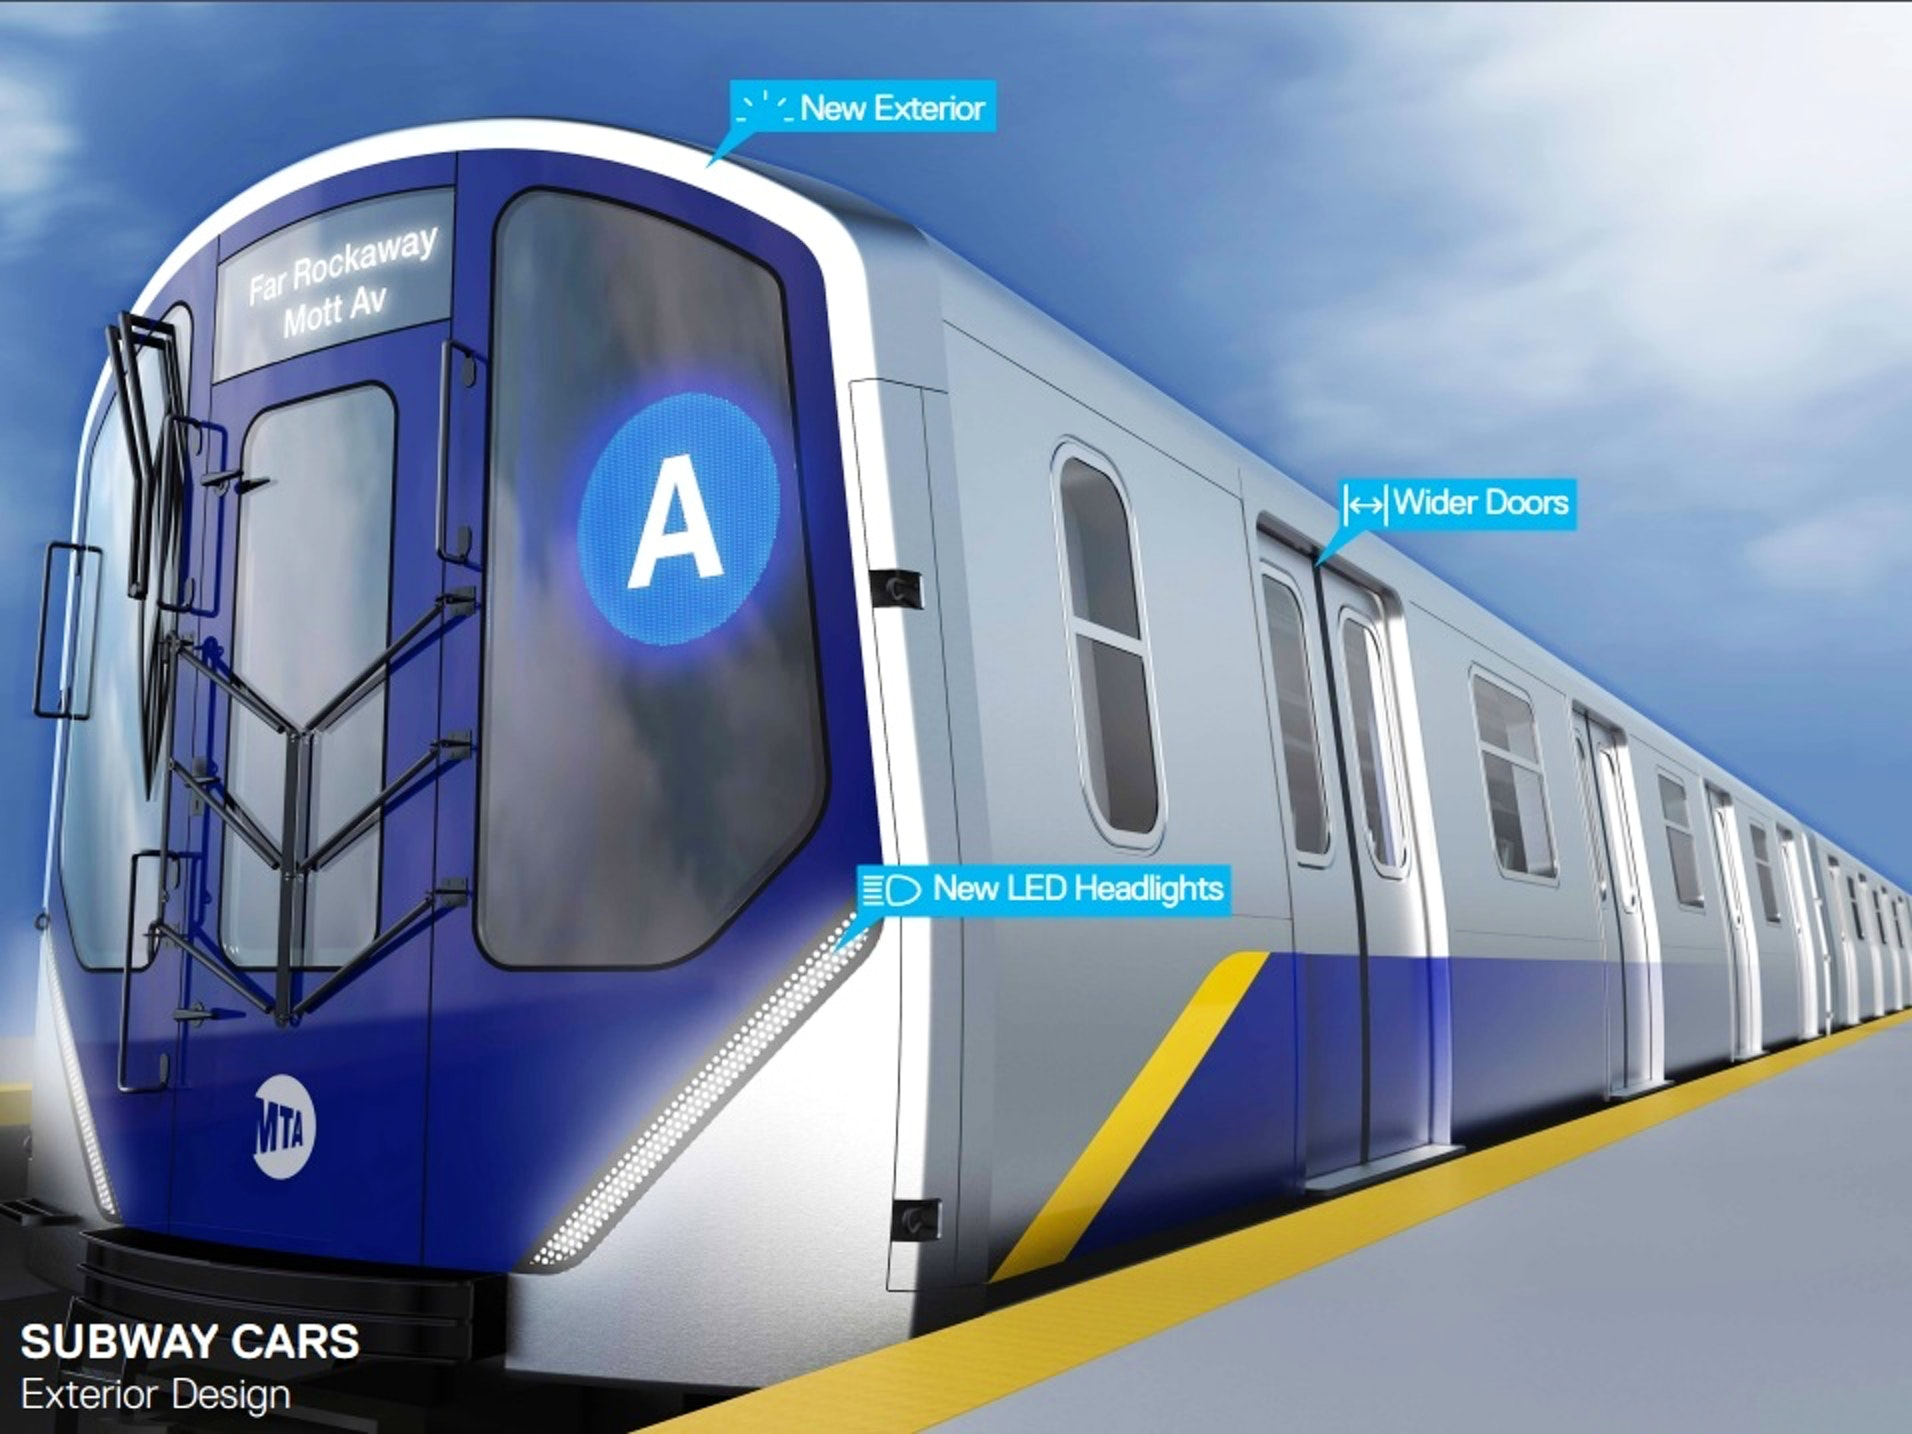 7 Futuristic Changes Coming to New York City's Subway System